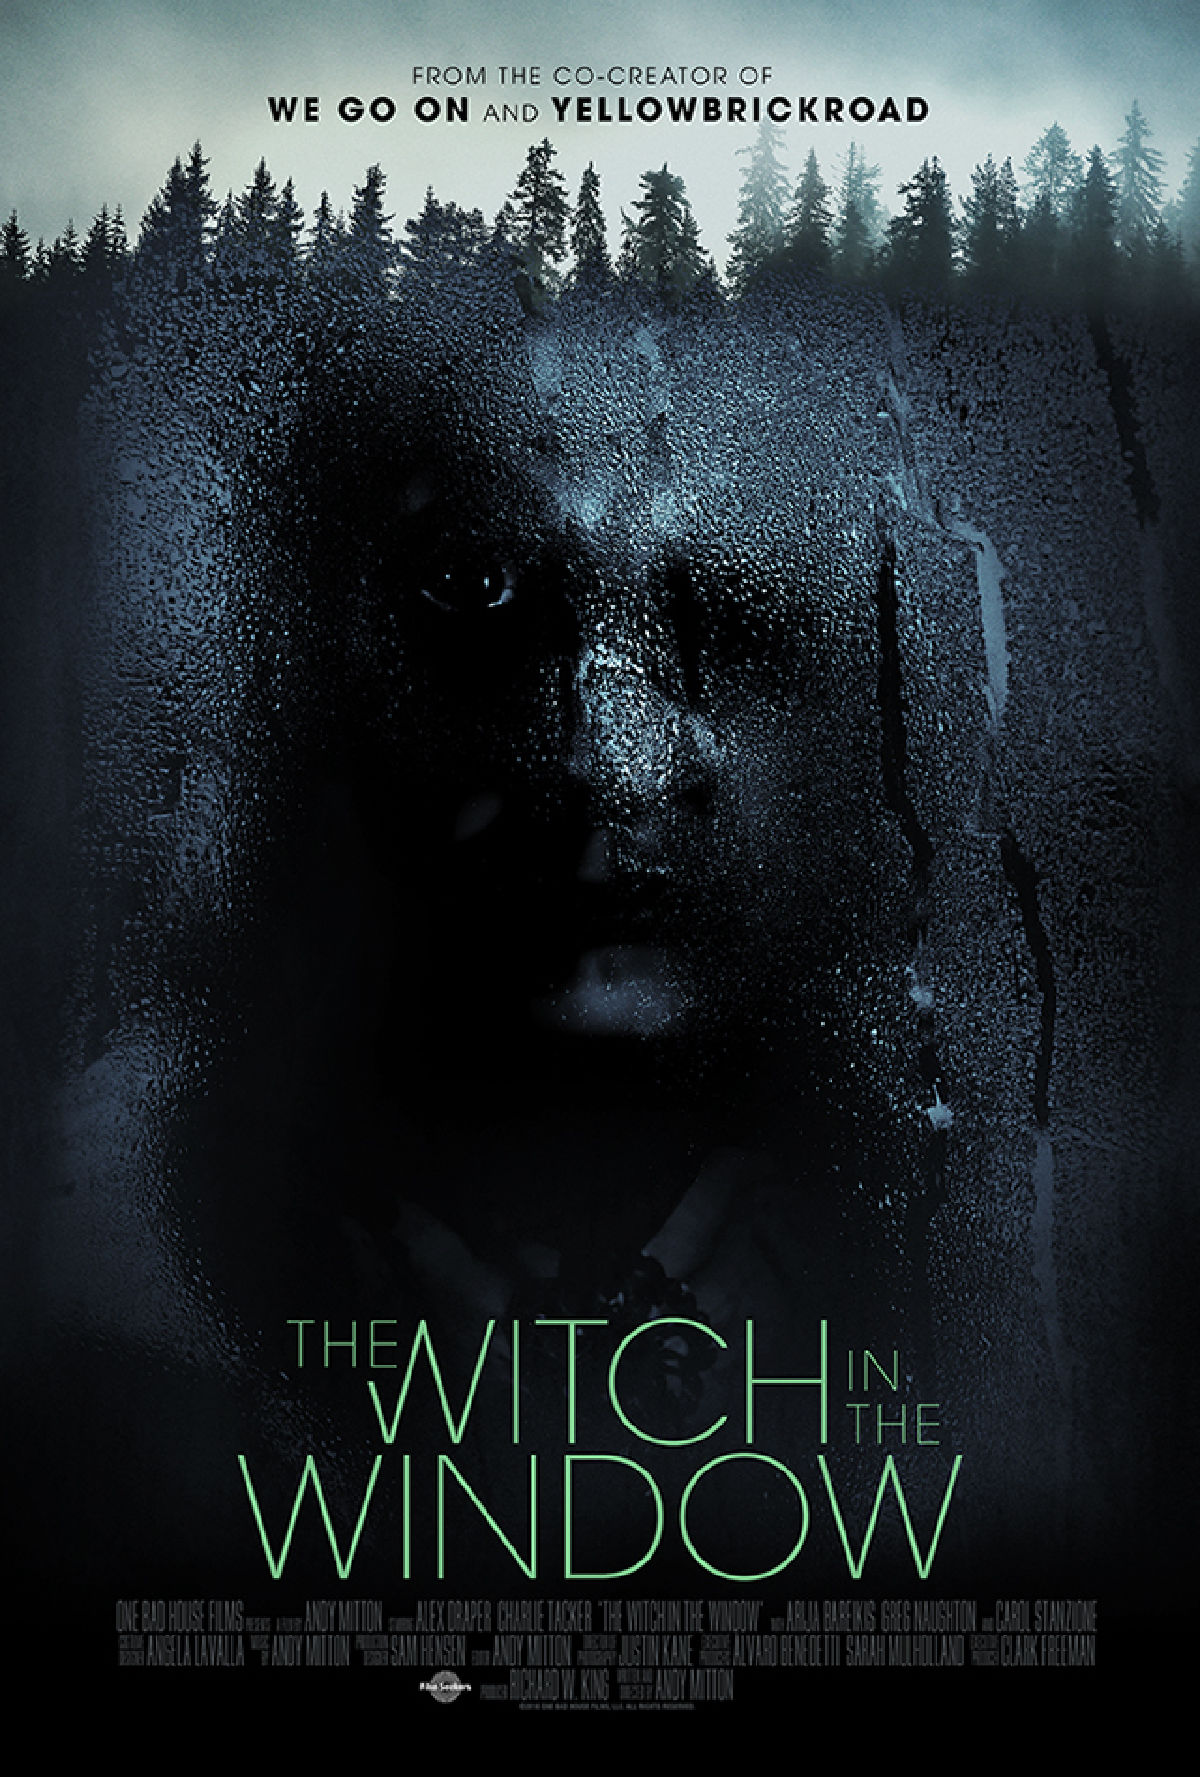 'The Witch In The Window' movie poster